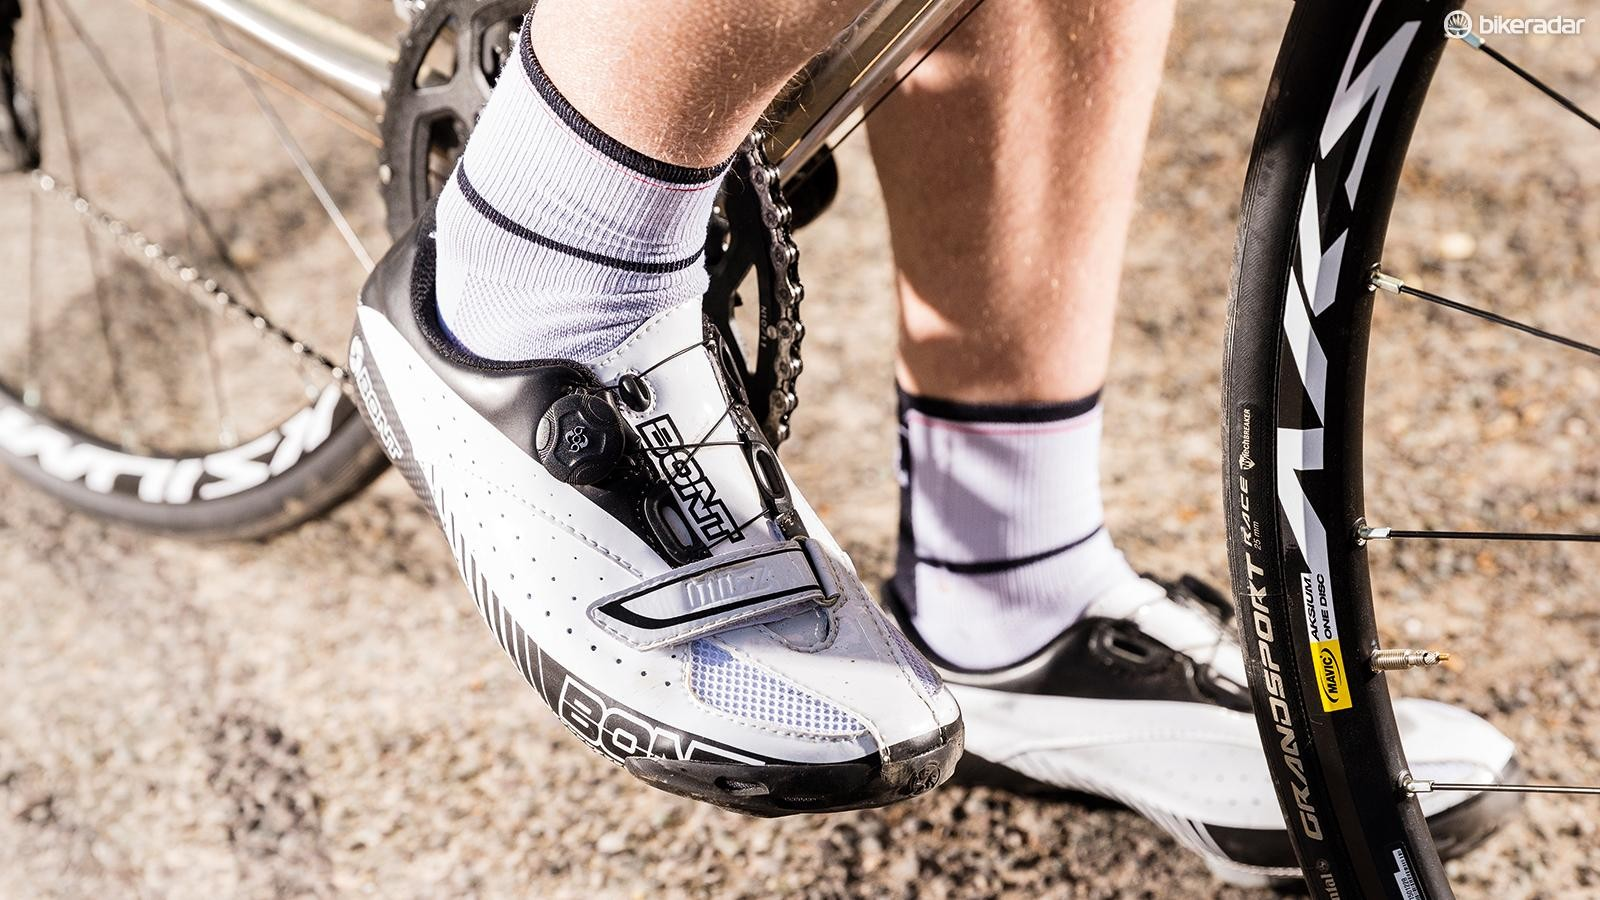 Bont's Blitz road shoes may not live up to the firm's hype, but they're damn fine kicks nonetheless